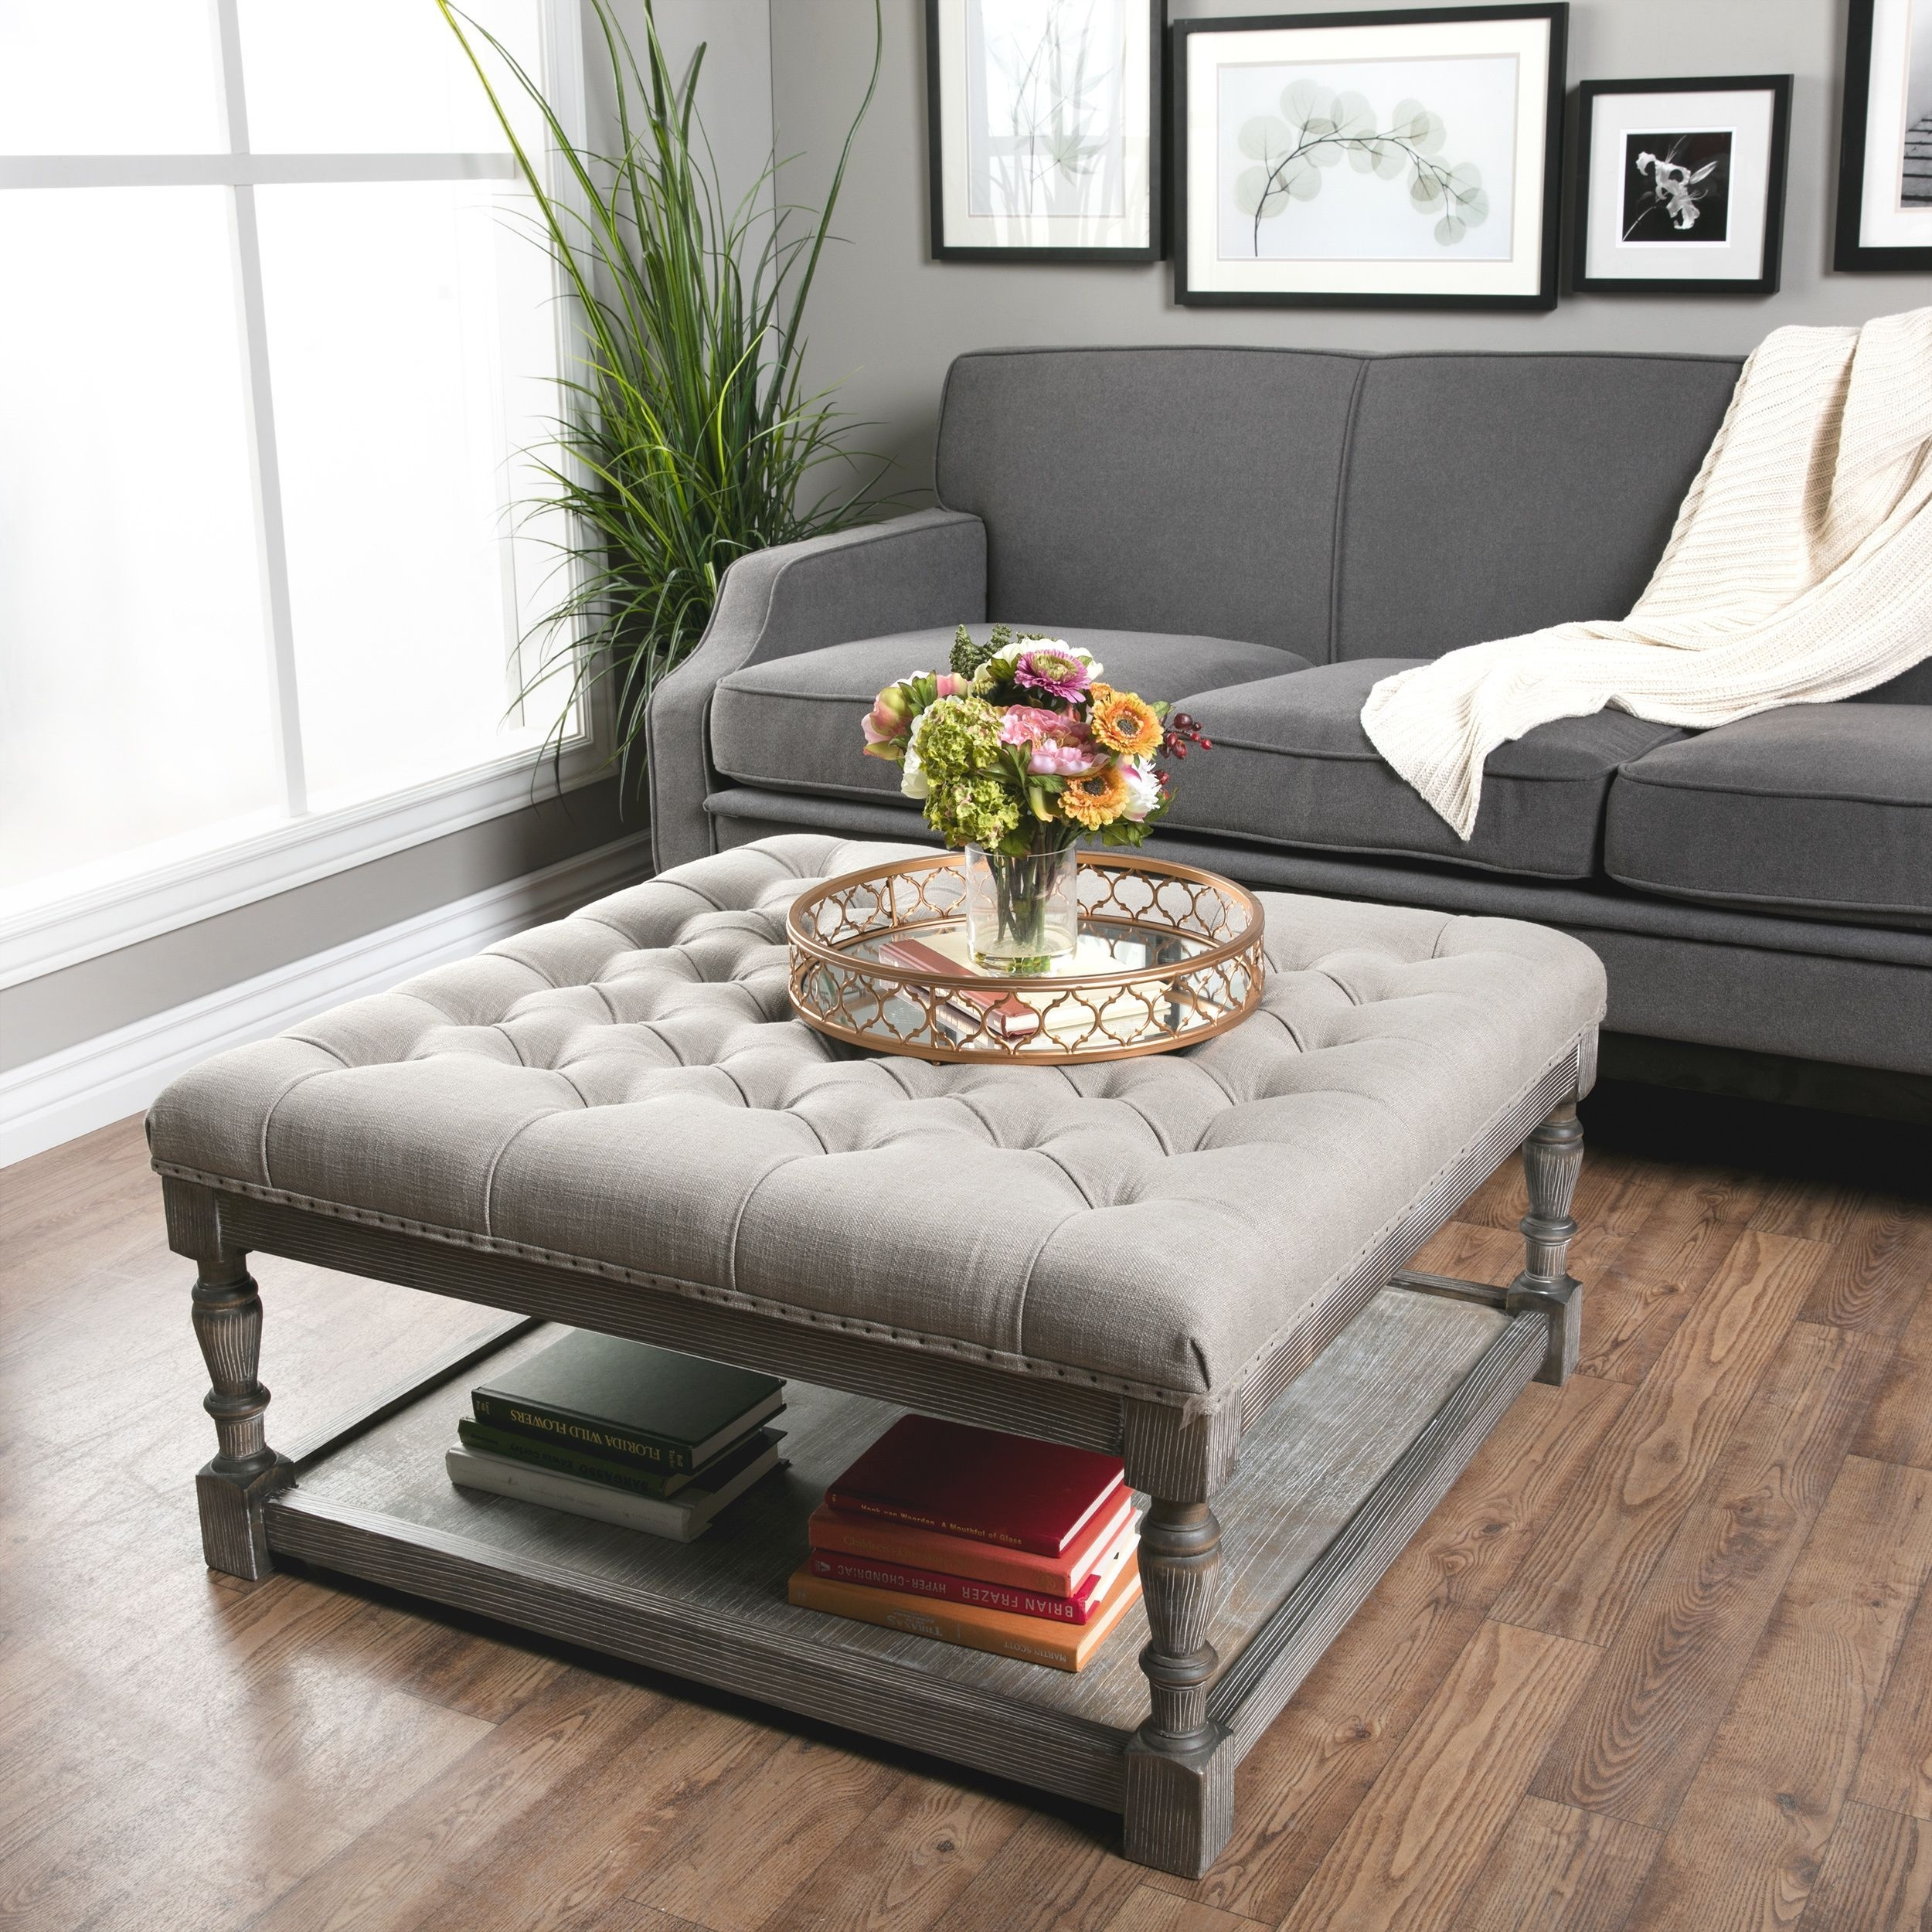 This Beautiful Creston Square Ottoman Features Comfortable, Durable intended for Button Tufted Coffee Tables (Image 27 of 30)